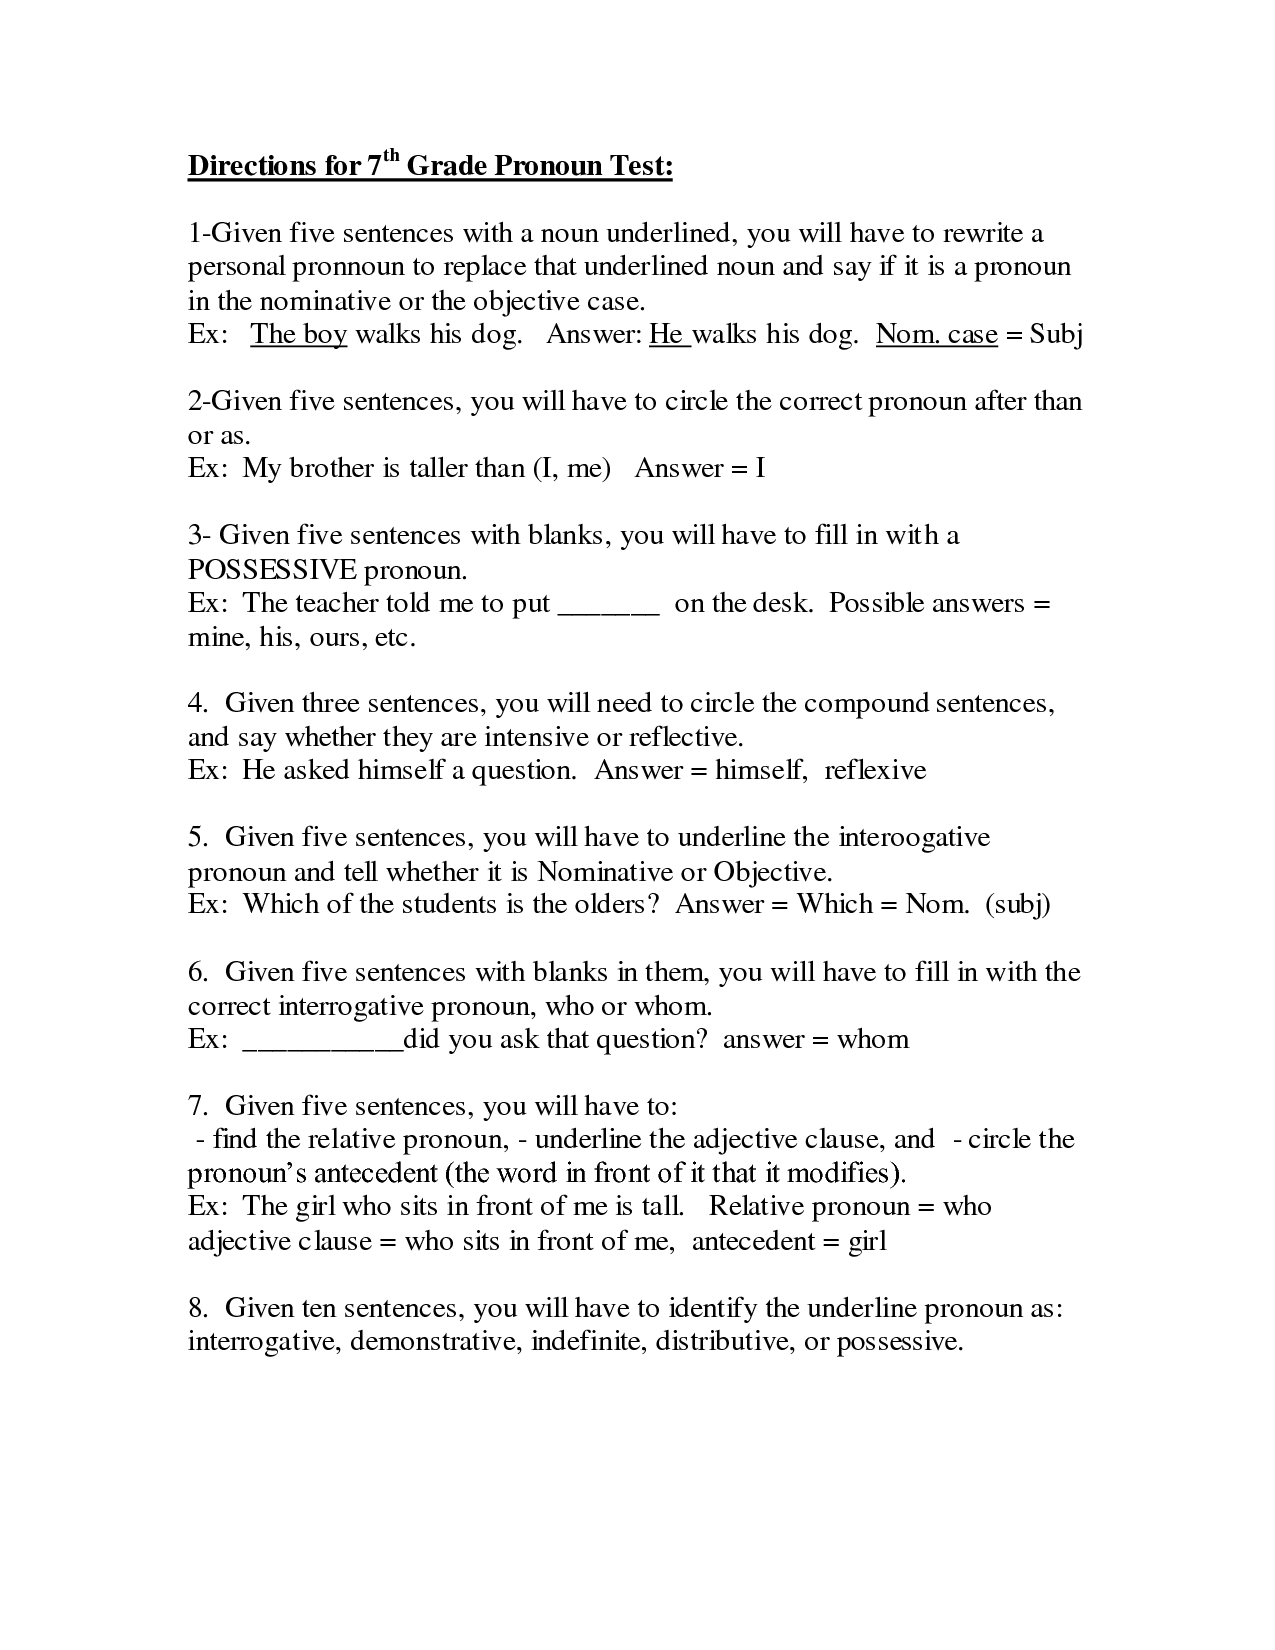 Math Worksheet Grid Paper Image Pre Math Test 7th Grade